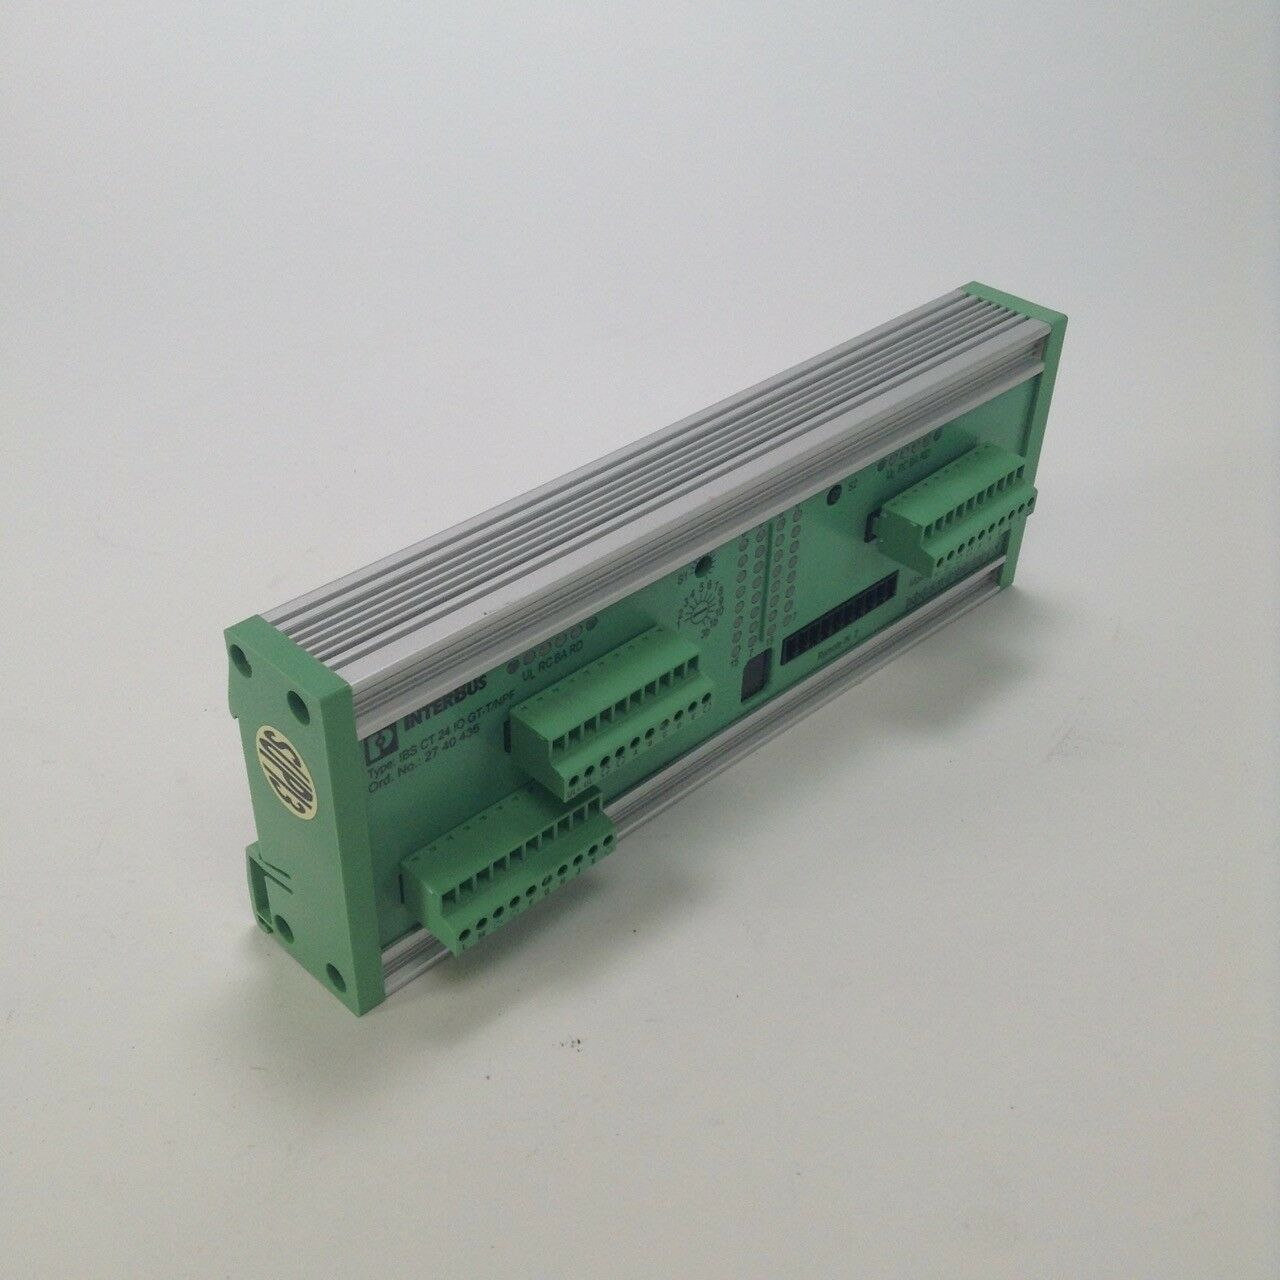 Phoenix Contact 2740436 Interbus modul koppelmodul Used UMP